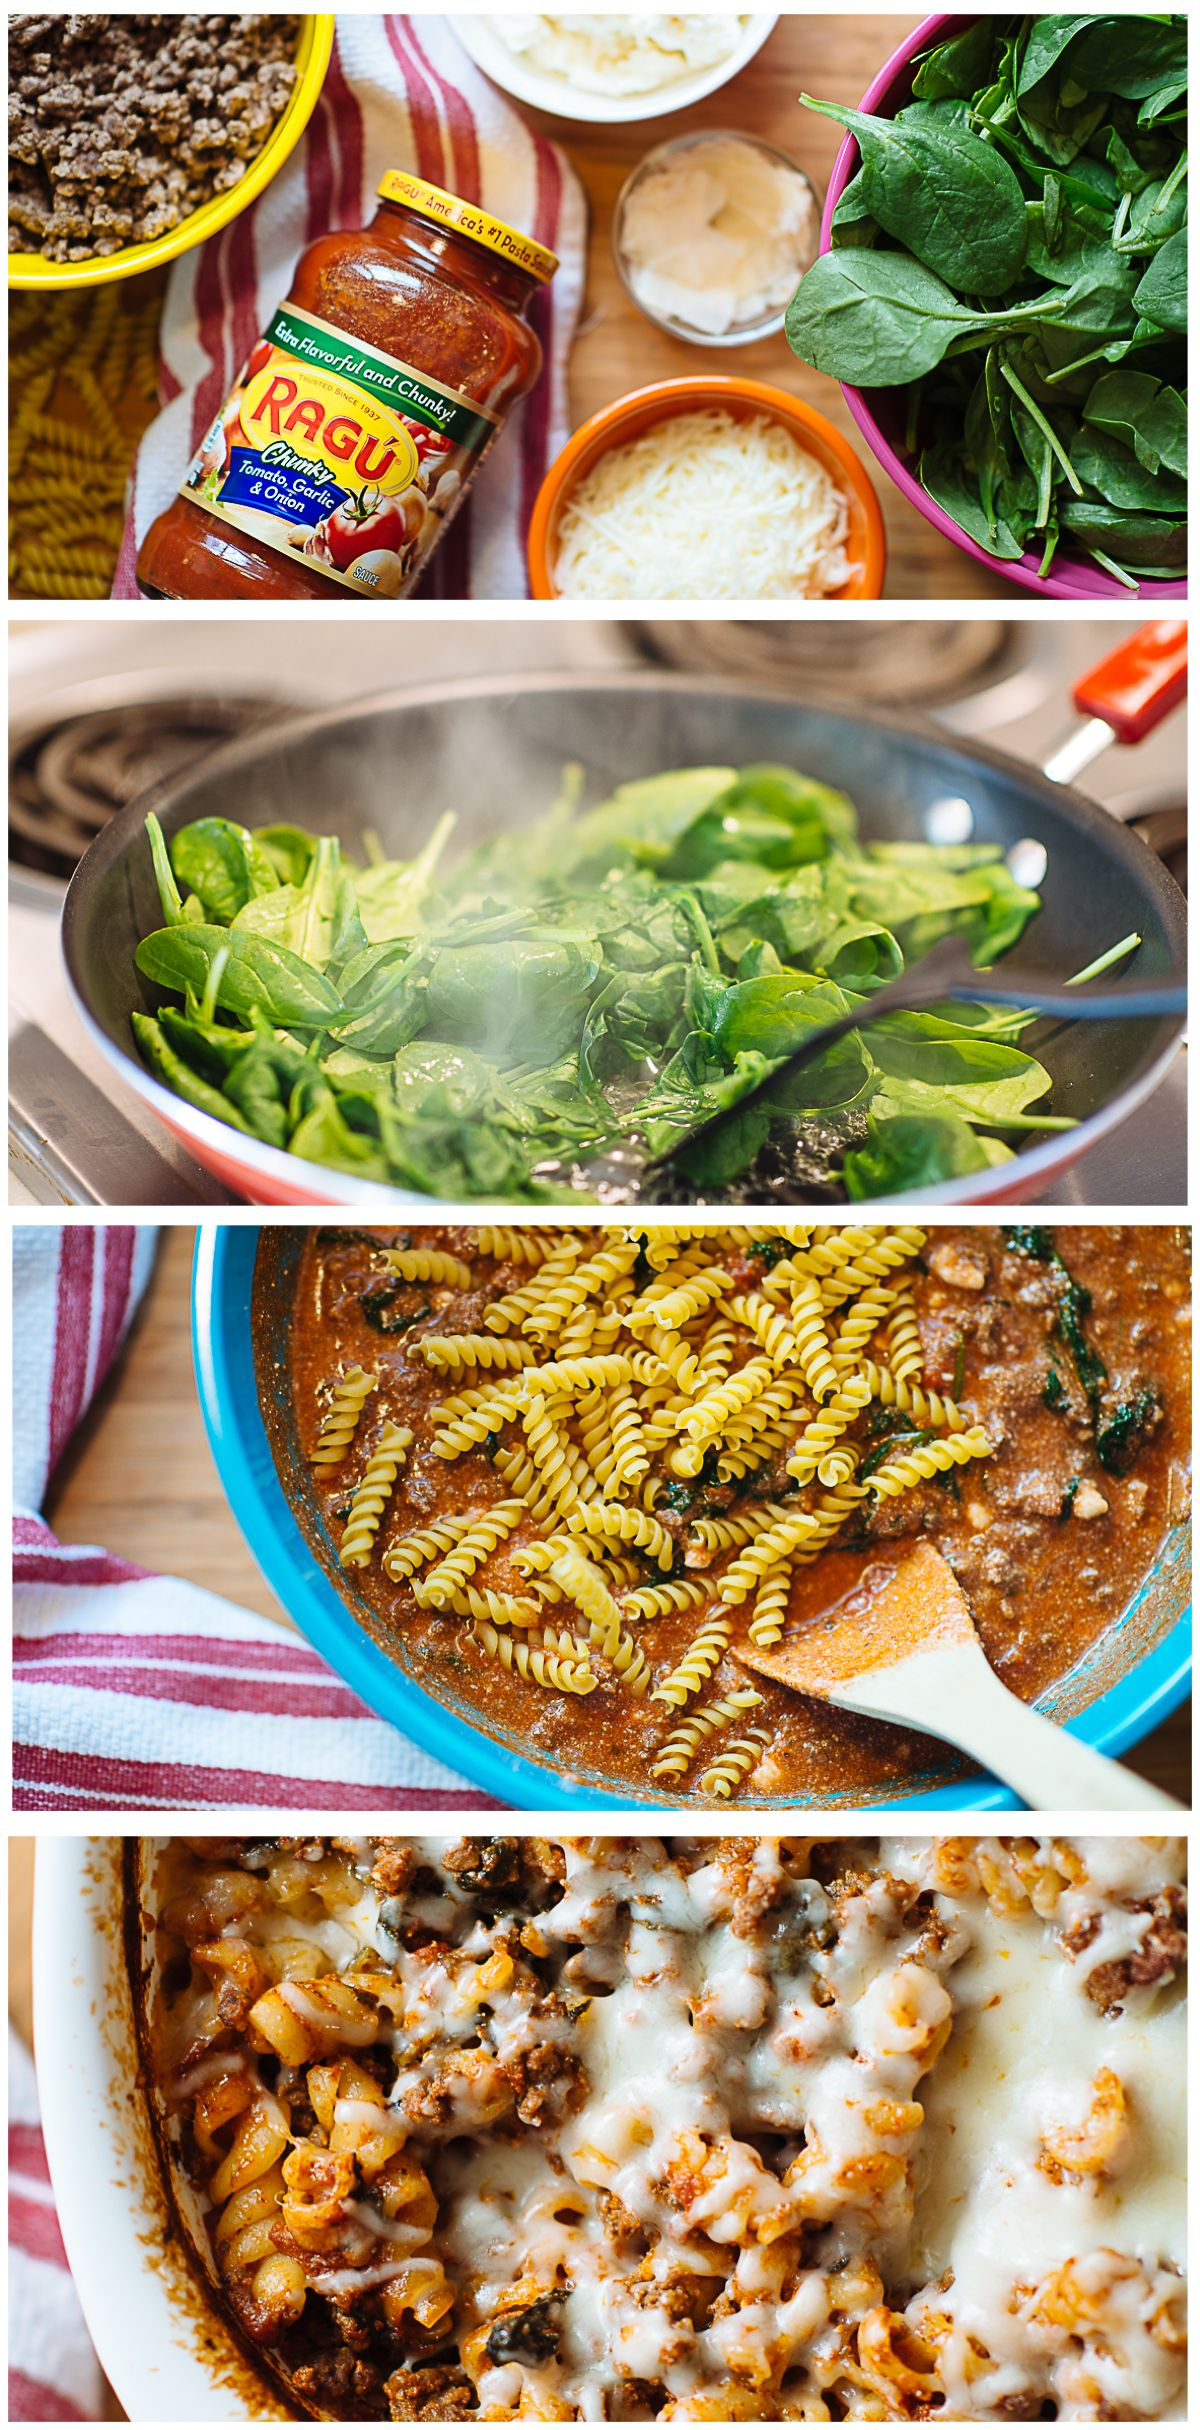 No Boil Beef Spinach Baked Rotini Rotini Pasta Recipes Ground Beef And Spinach Spinach Bake